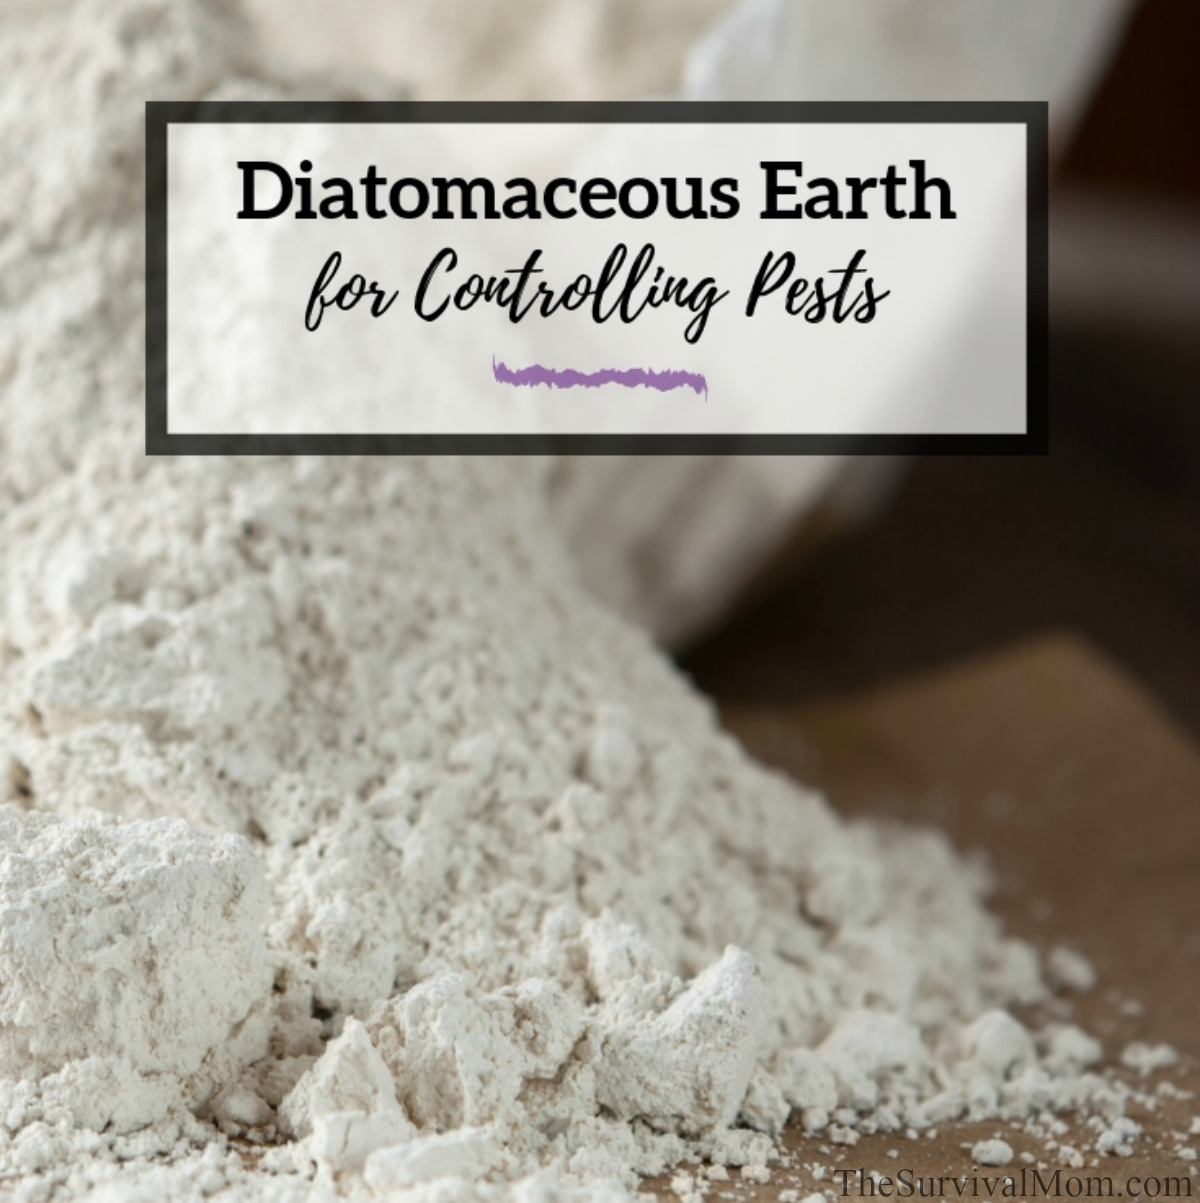 Diatomaceous Earth for Controlling Pests via The Survival Mom